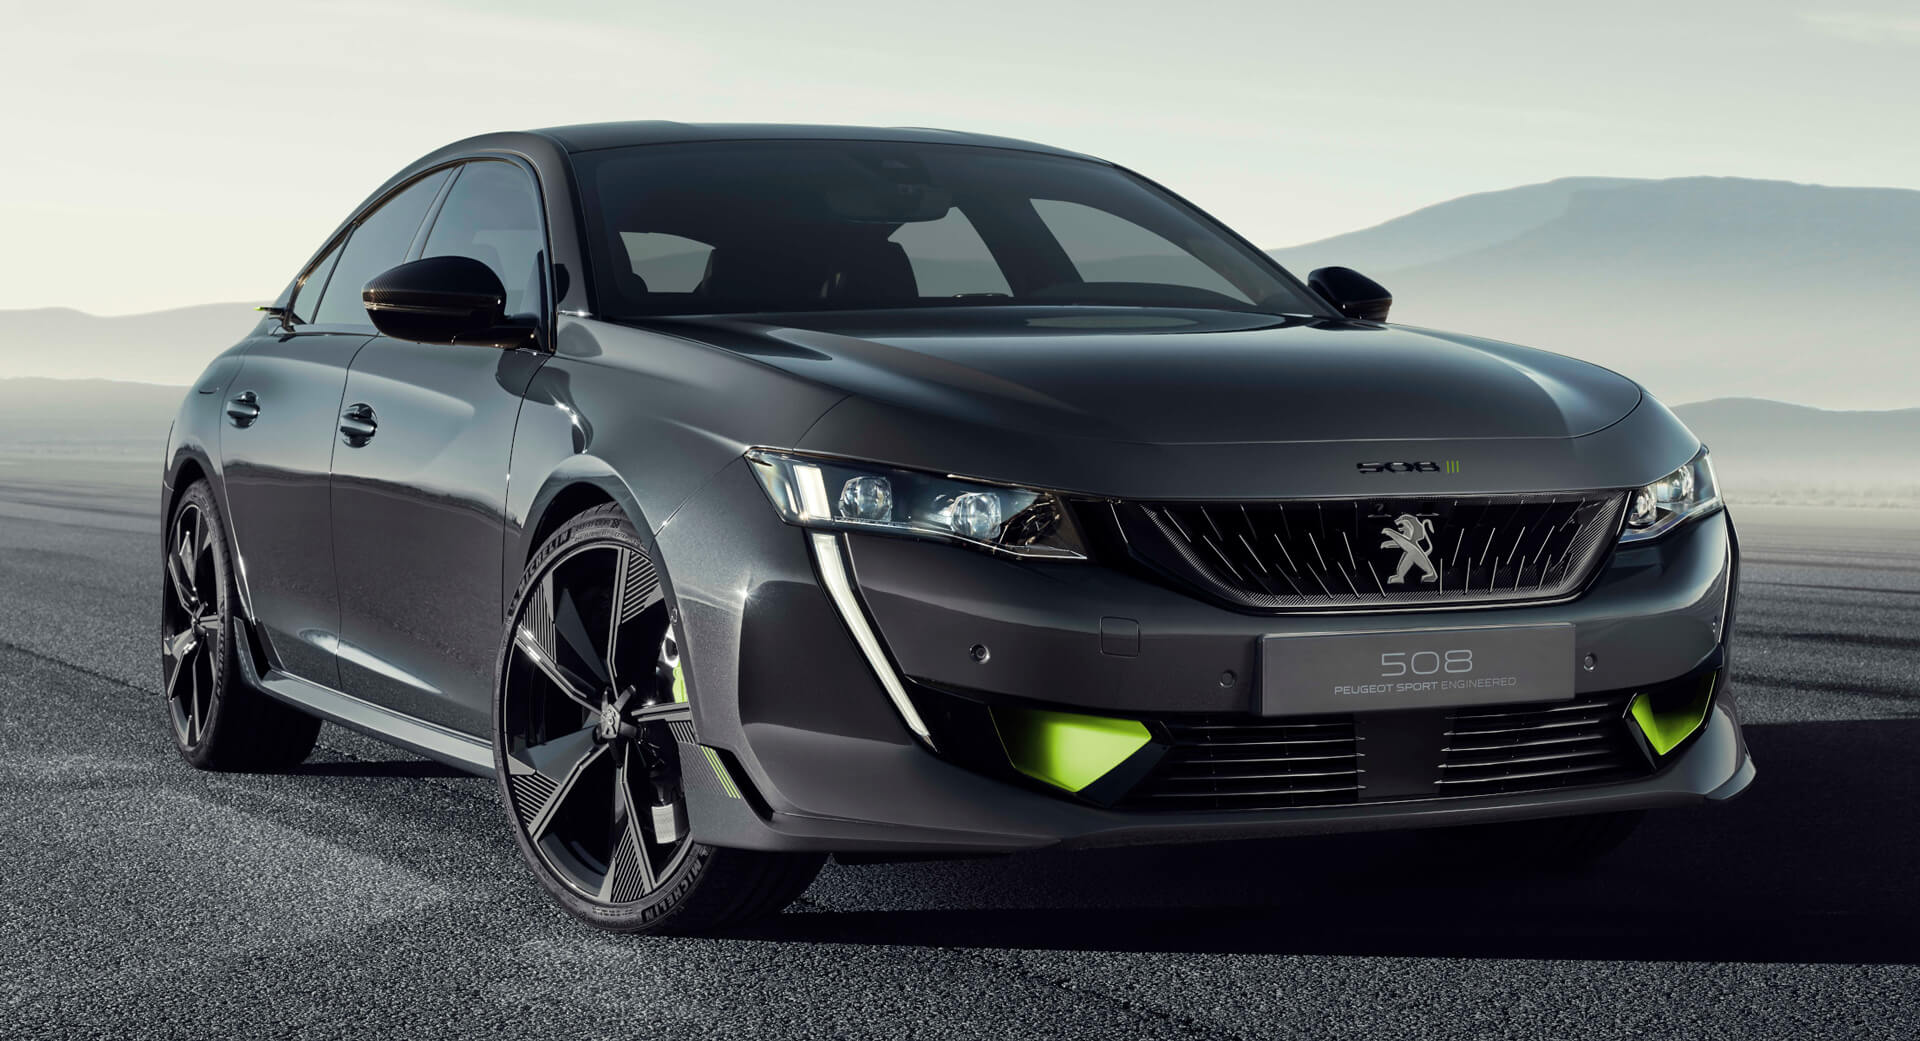 Peugeot 508 PSE PHEV Launched In Germany, Costs More Than BMW's M340i xDrive   Carscoops